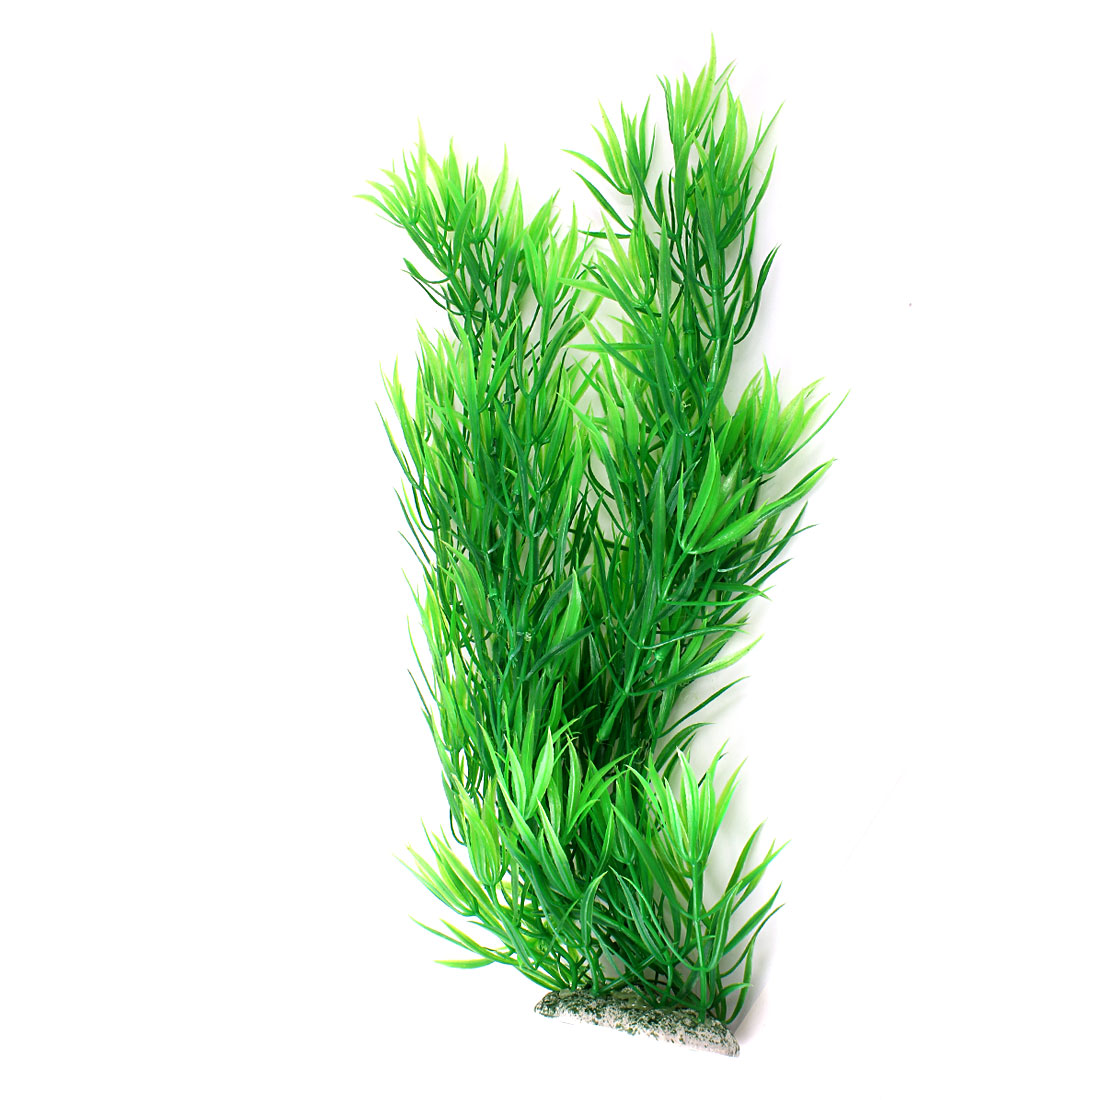 "Aquarium Fish Tank Landscaping Artificial Emulational Underwater Water Plant Grass Ornament Green 14.5"" Height"